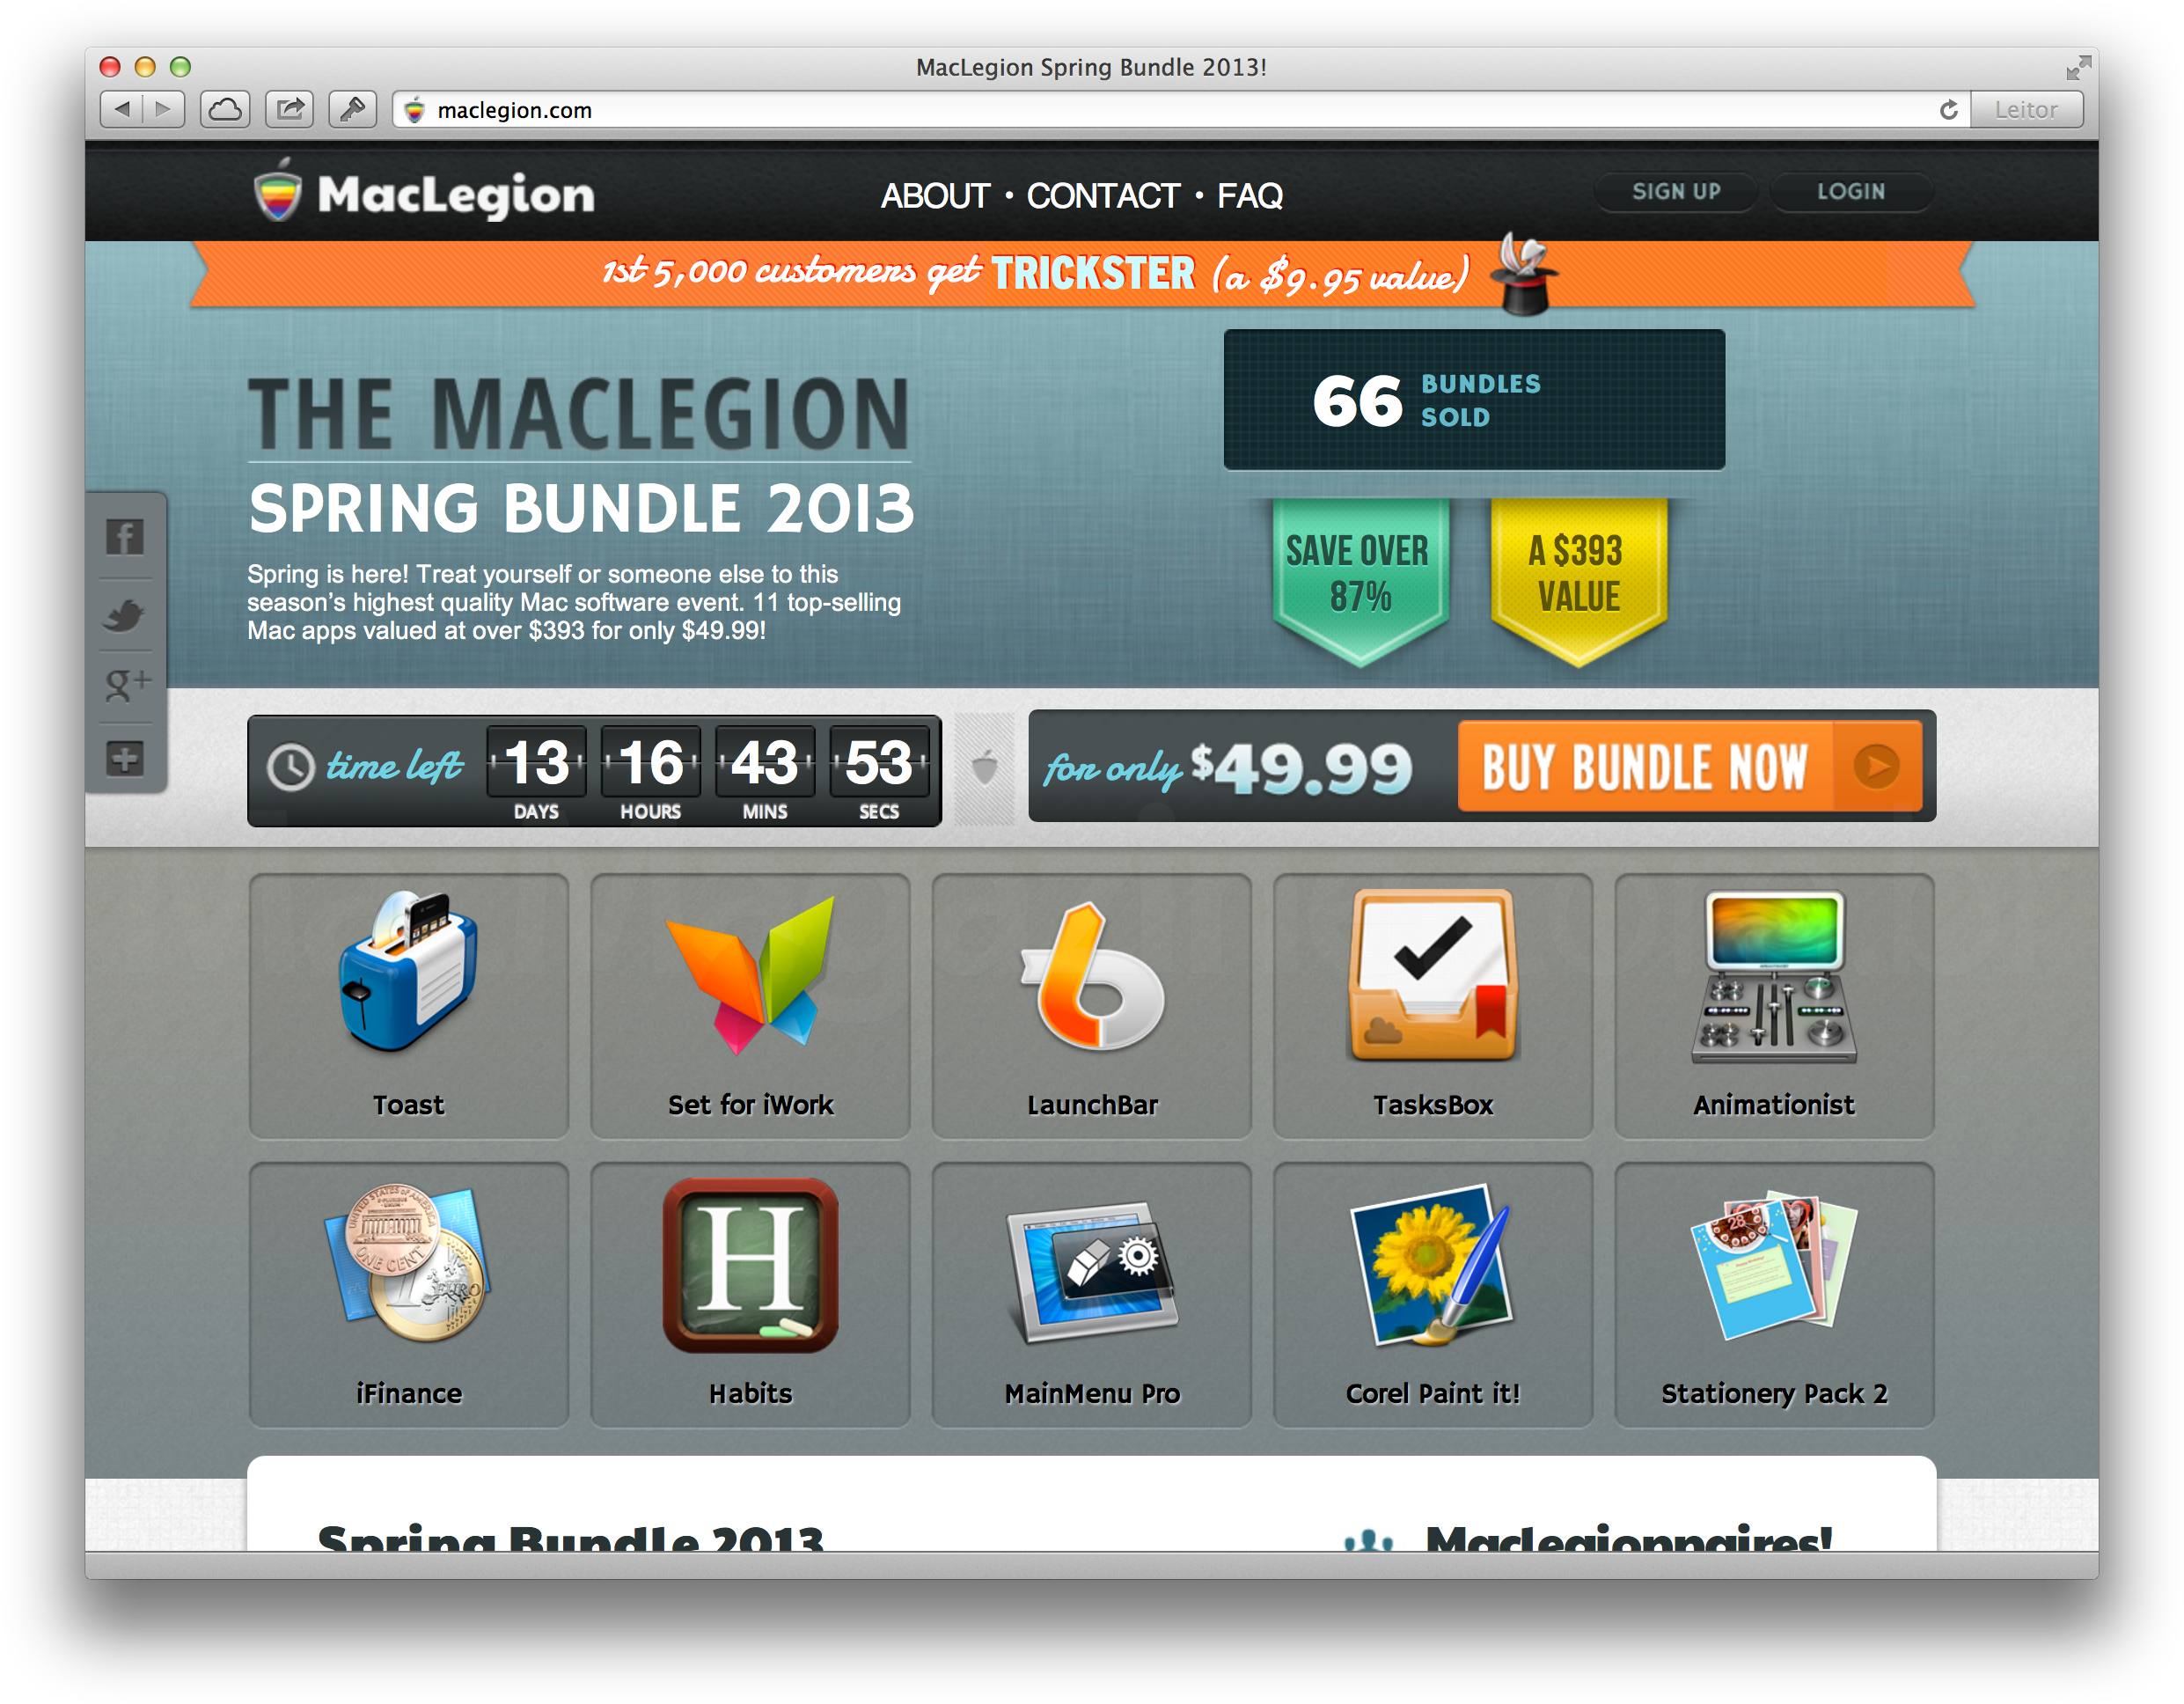 MacLegion Spring Bundle 2013